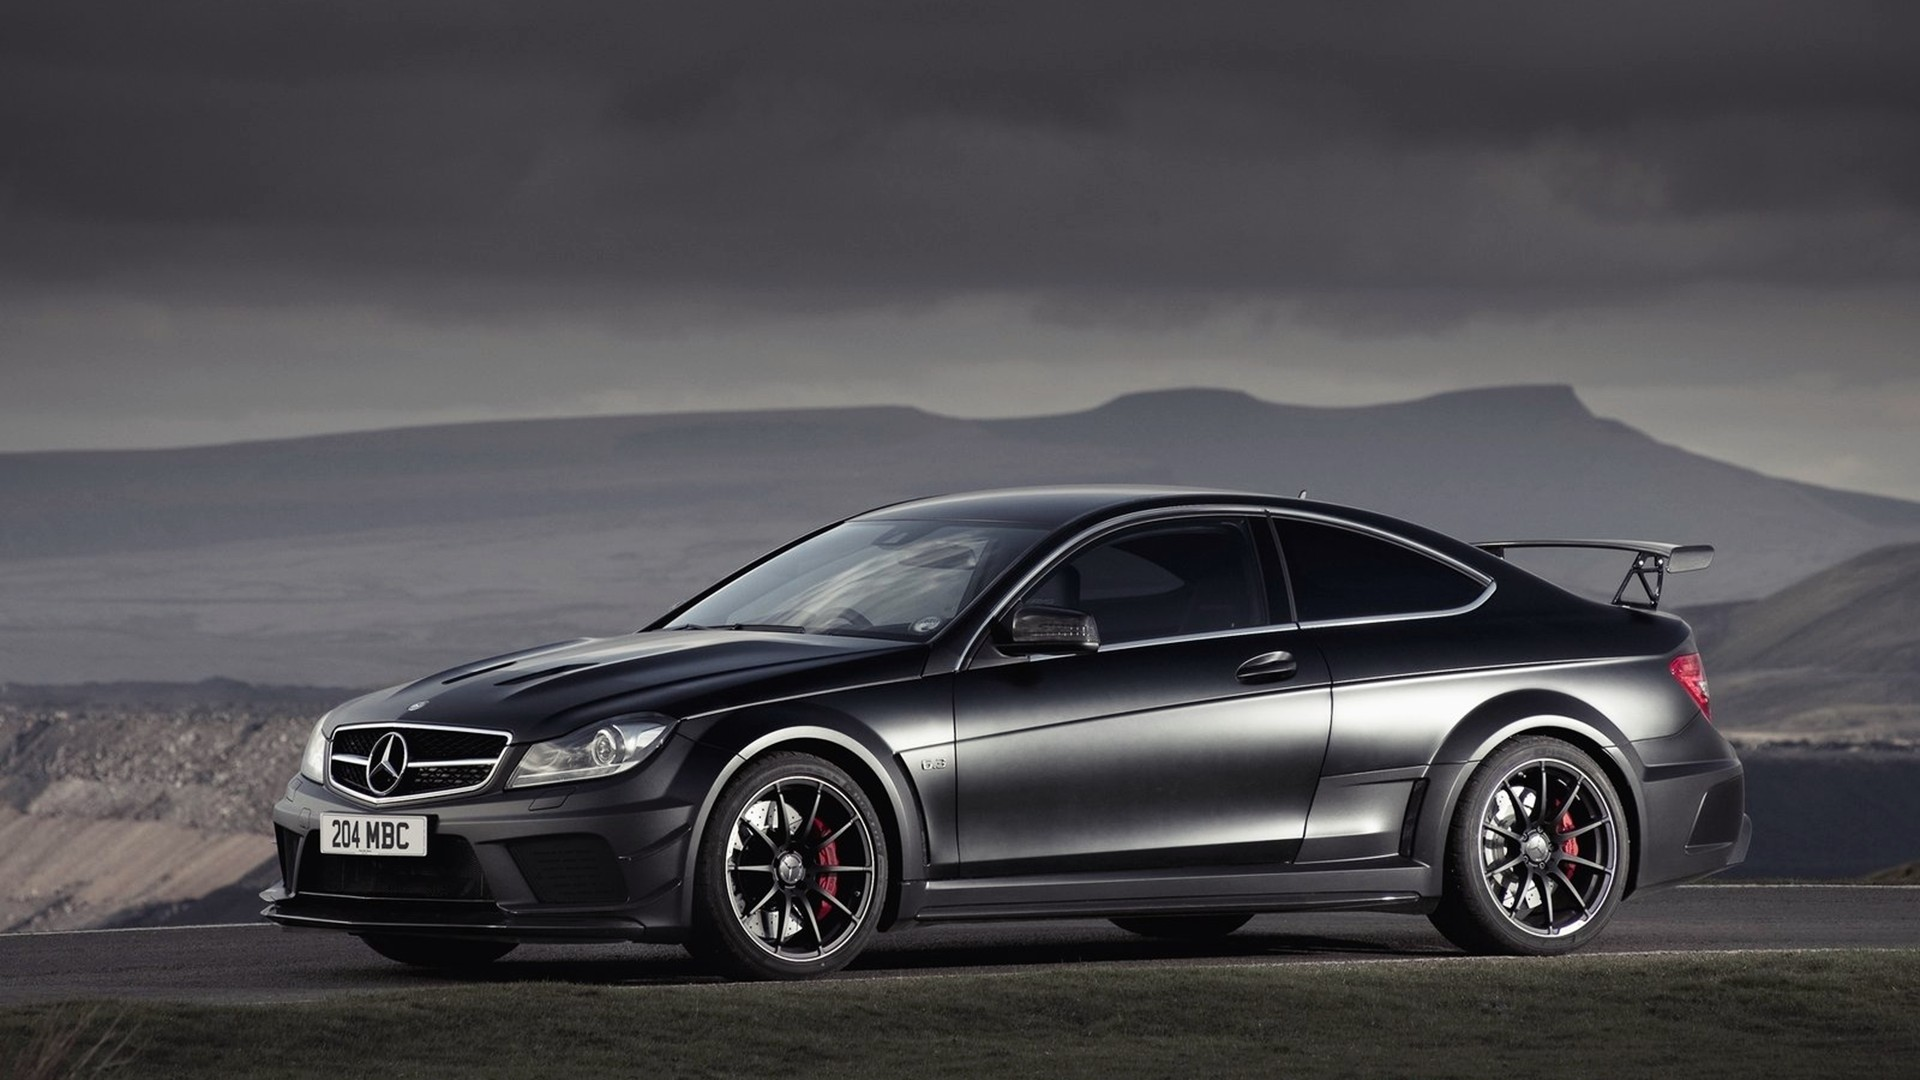 Mercedes-Benz C63 AMG HD Wallpaper | Background Image | 1920x1080 | ID:352986 - Wallpaper Abyss